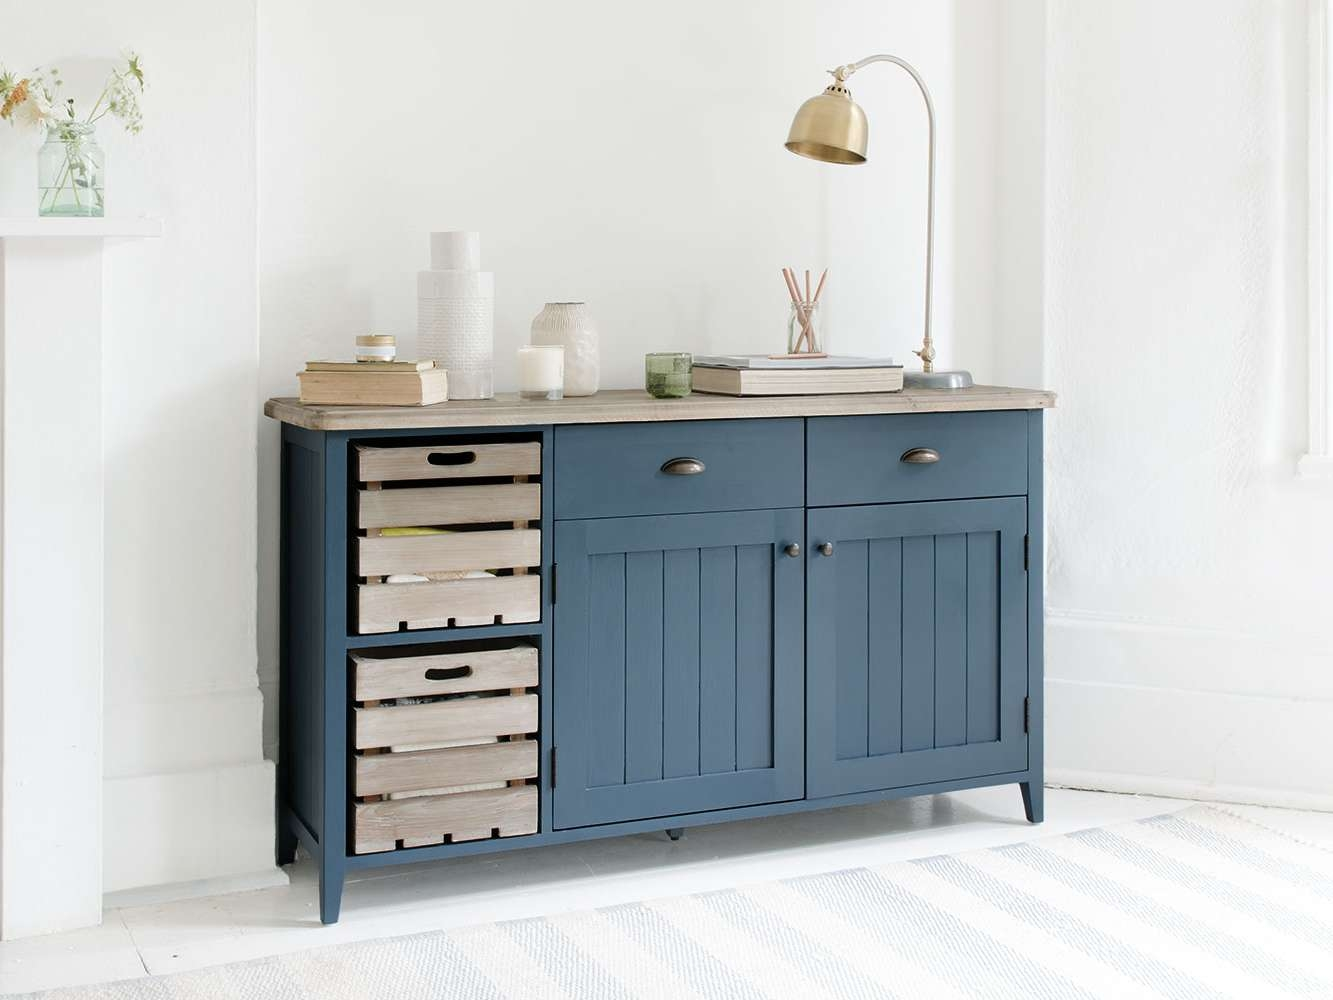 Cidre Sideboard In Inky Blue | Painted Sideboard | Loaf With Regard To Painted Sideboards (View 2 of 20)